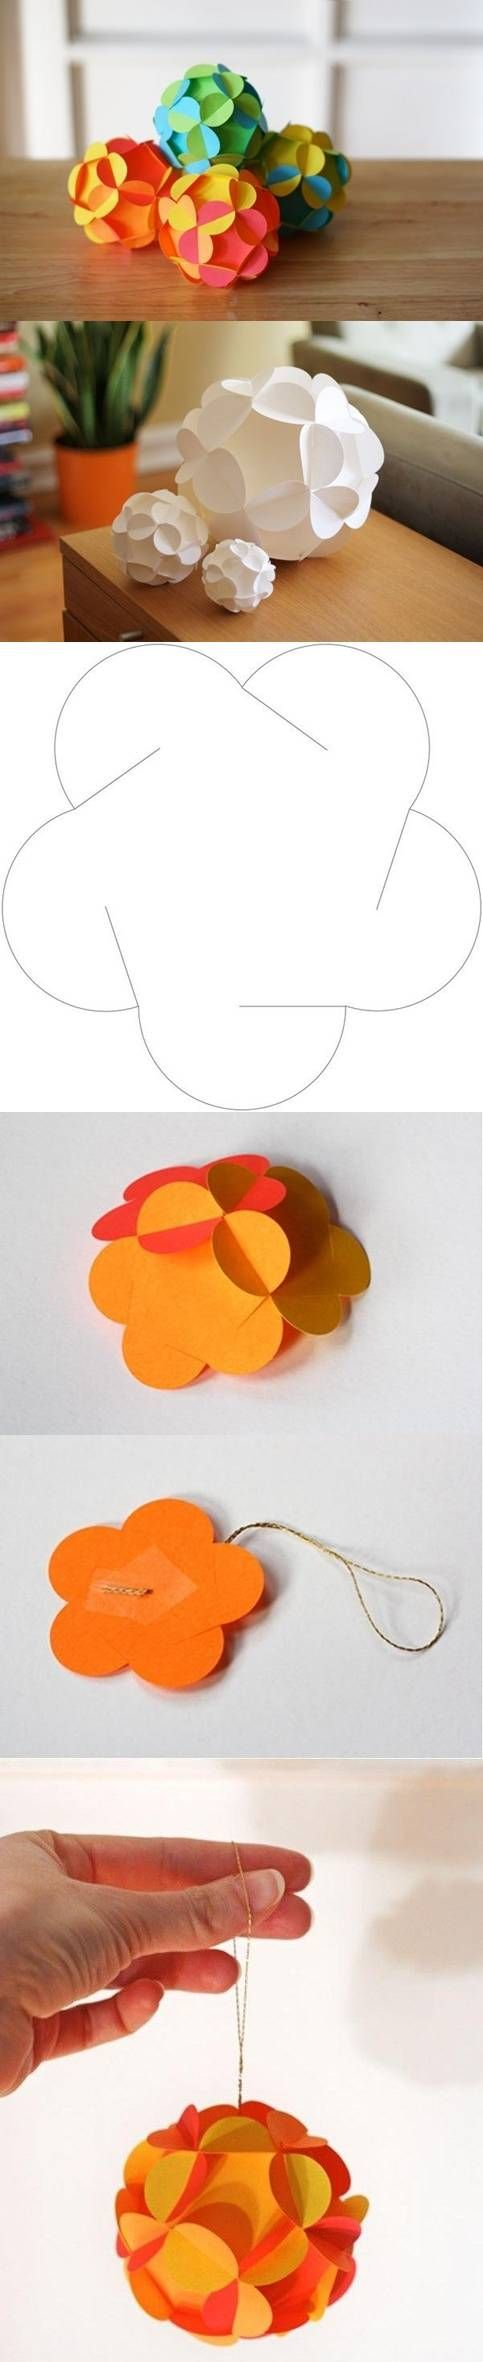 DIY Paper Balls and more #home #diy